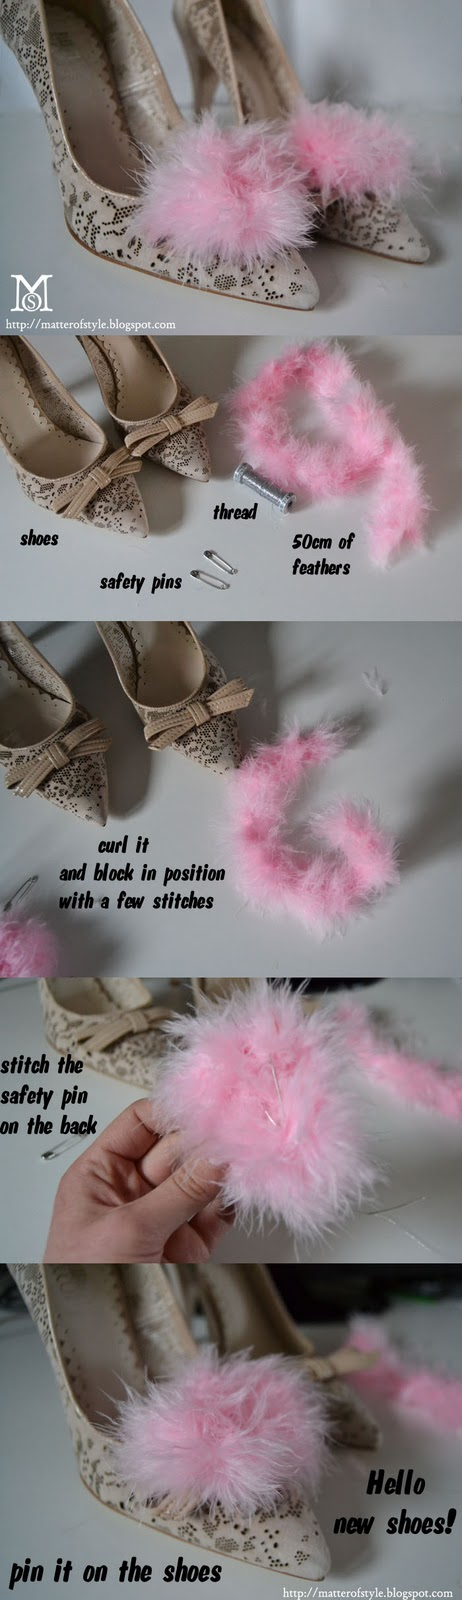 alexander wang fluffy shoes, alexander wang diy,fluffy shoes diy,feather shoes diy,wedding shoes diy,marras diy,spring shoes diy,pin on decorations,diy shoes